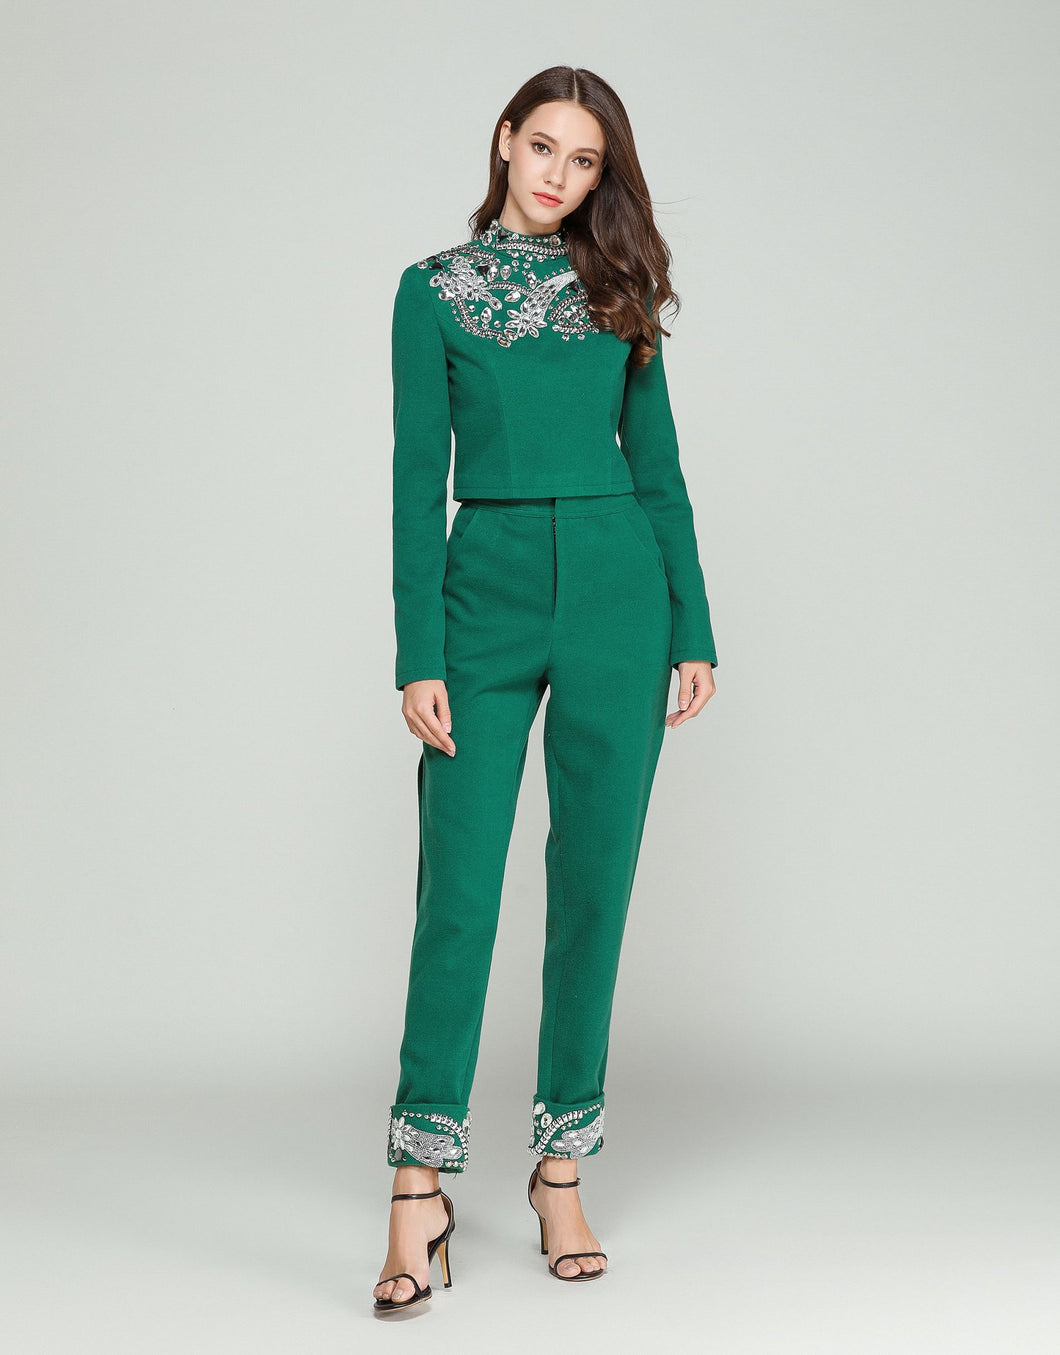 Comino Couture Emerald City Trouser Suit *WAS £250*